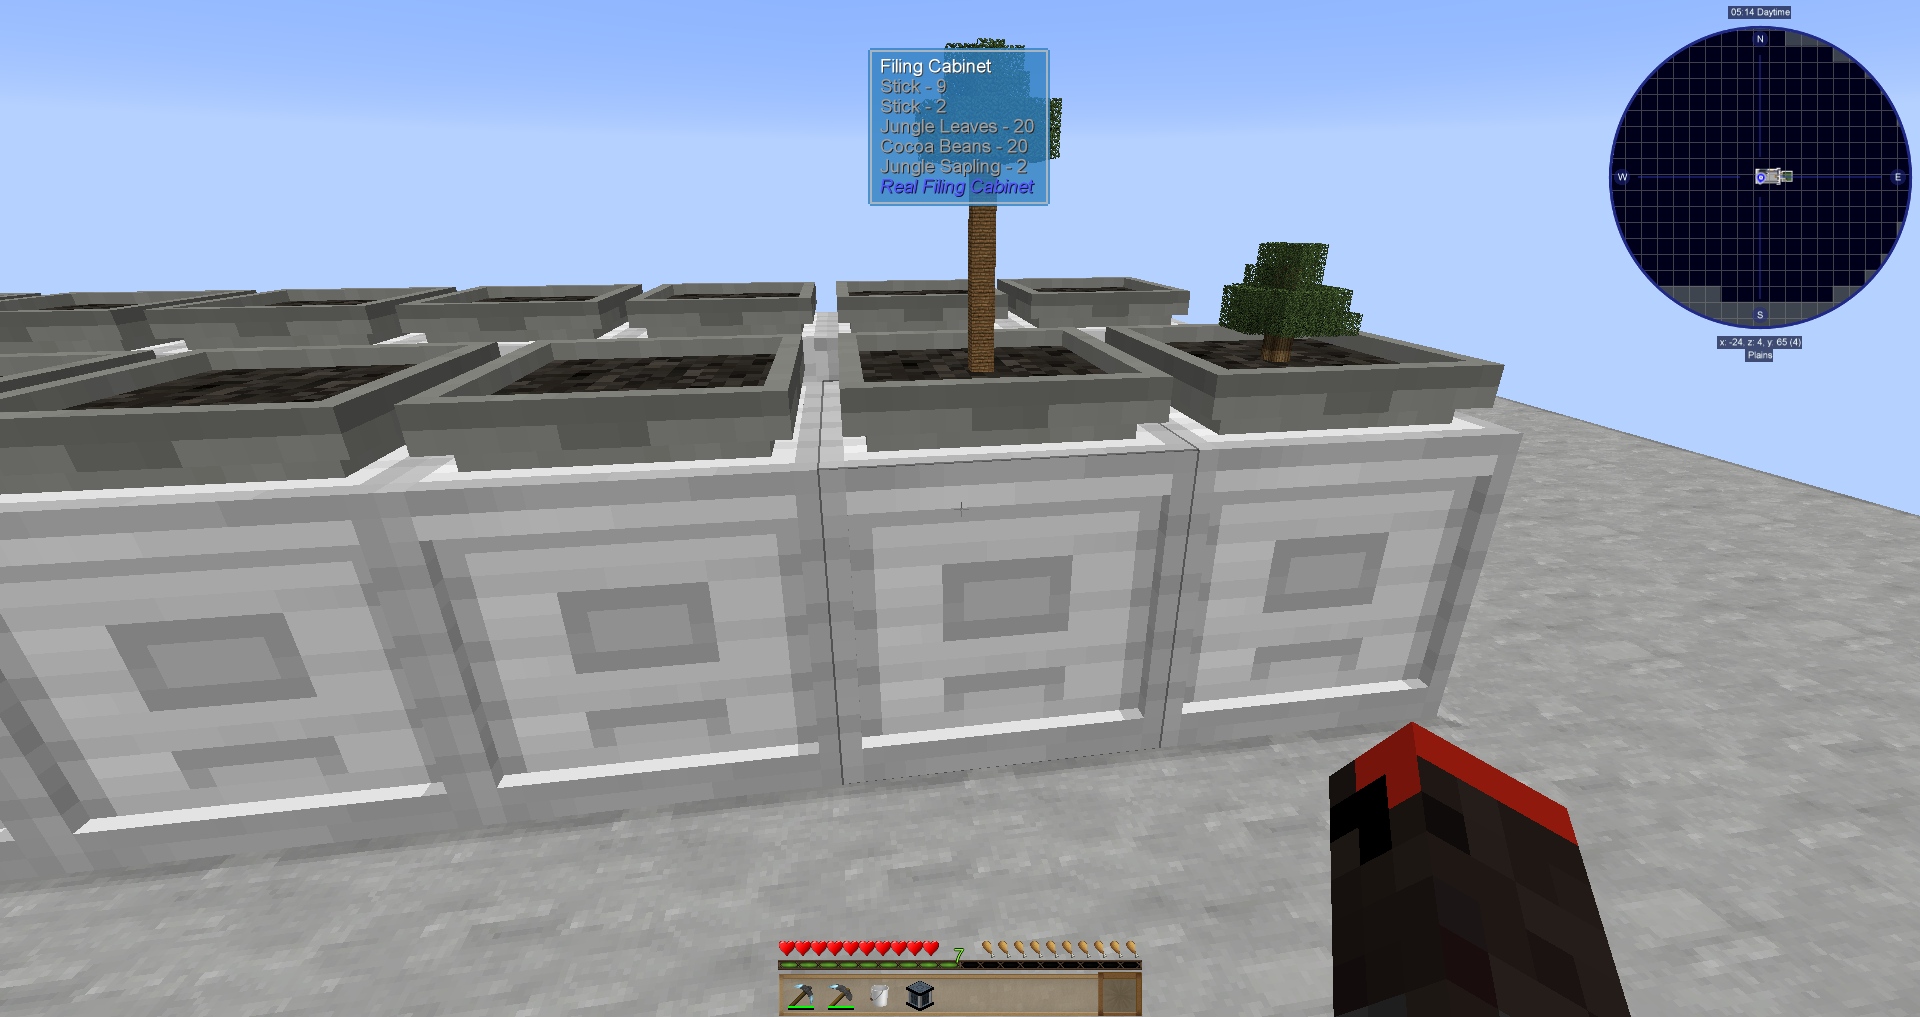 Hopper Bonsai Jungle Sapling And Filing Cabinet With The Correct Folders In It Issue 28 Darkpacks Skyfactory 4 Github